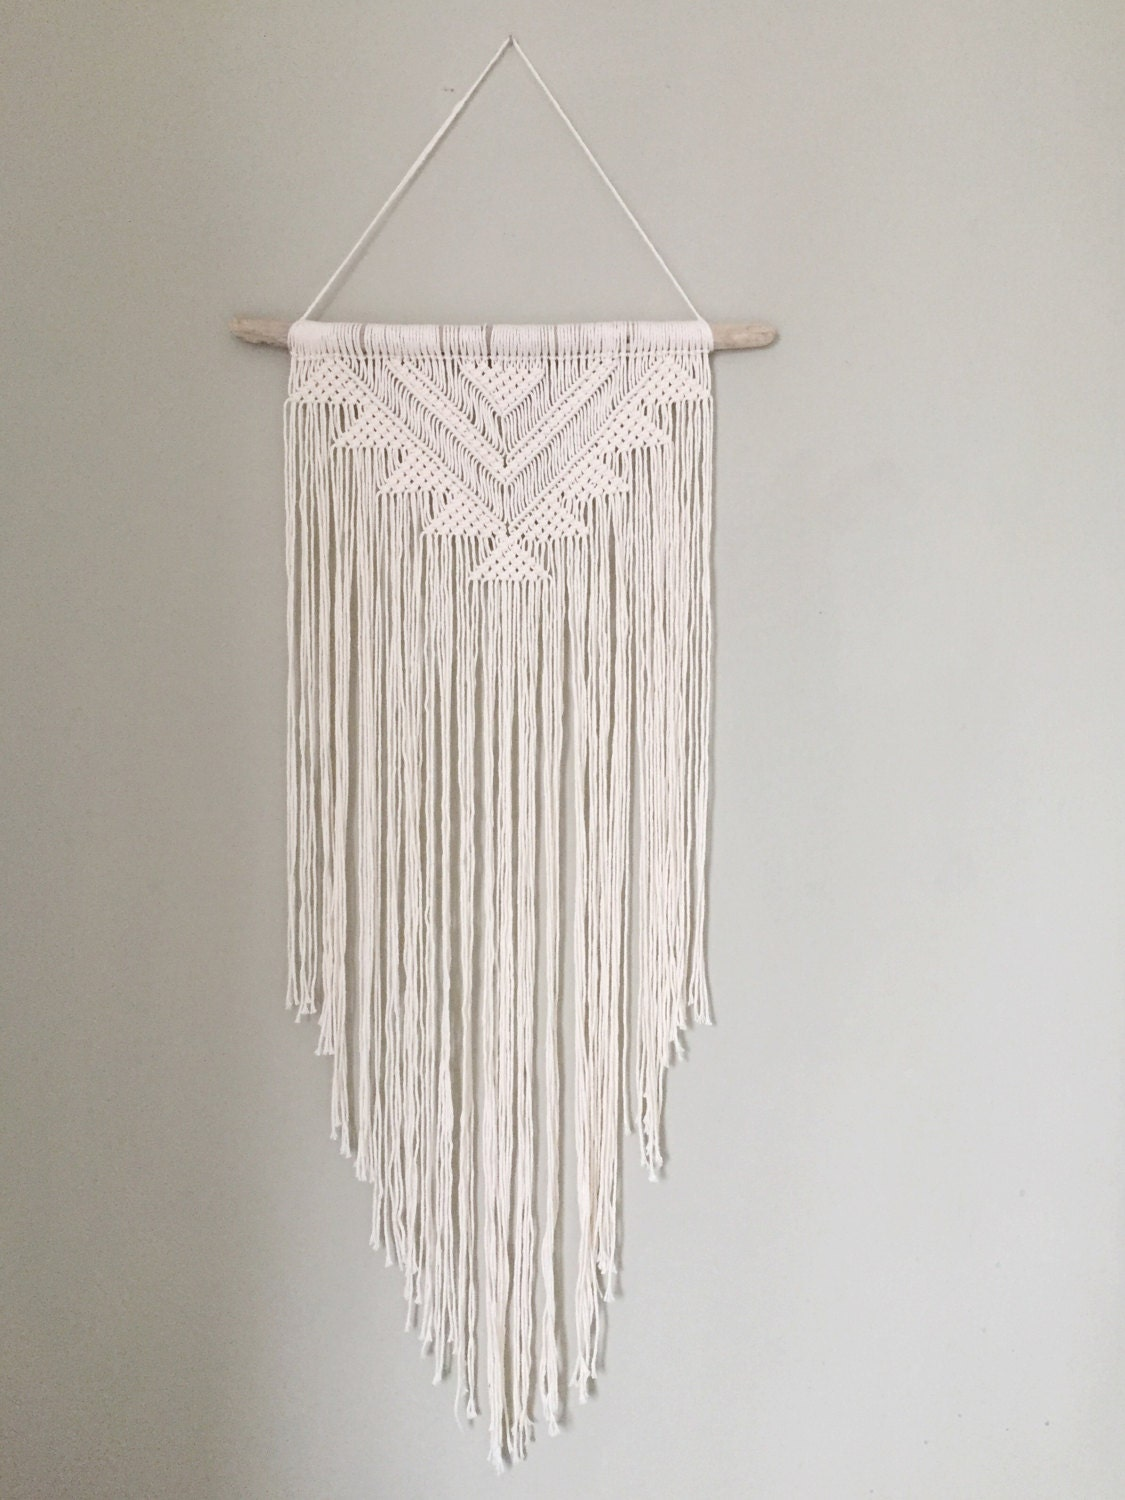 Handmade macrame wall hanging wall decor boho chic wall art for Small wall art